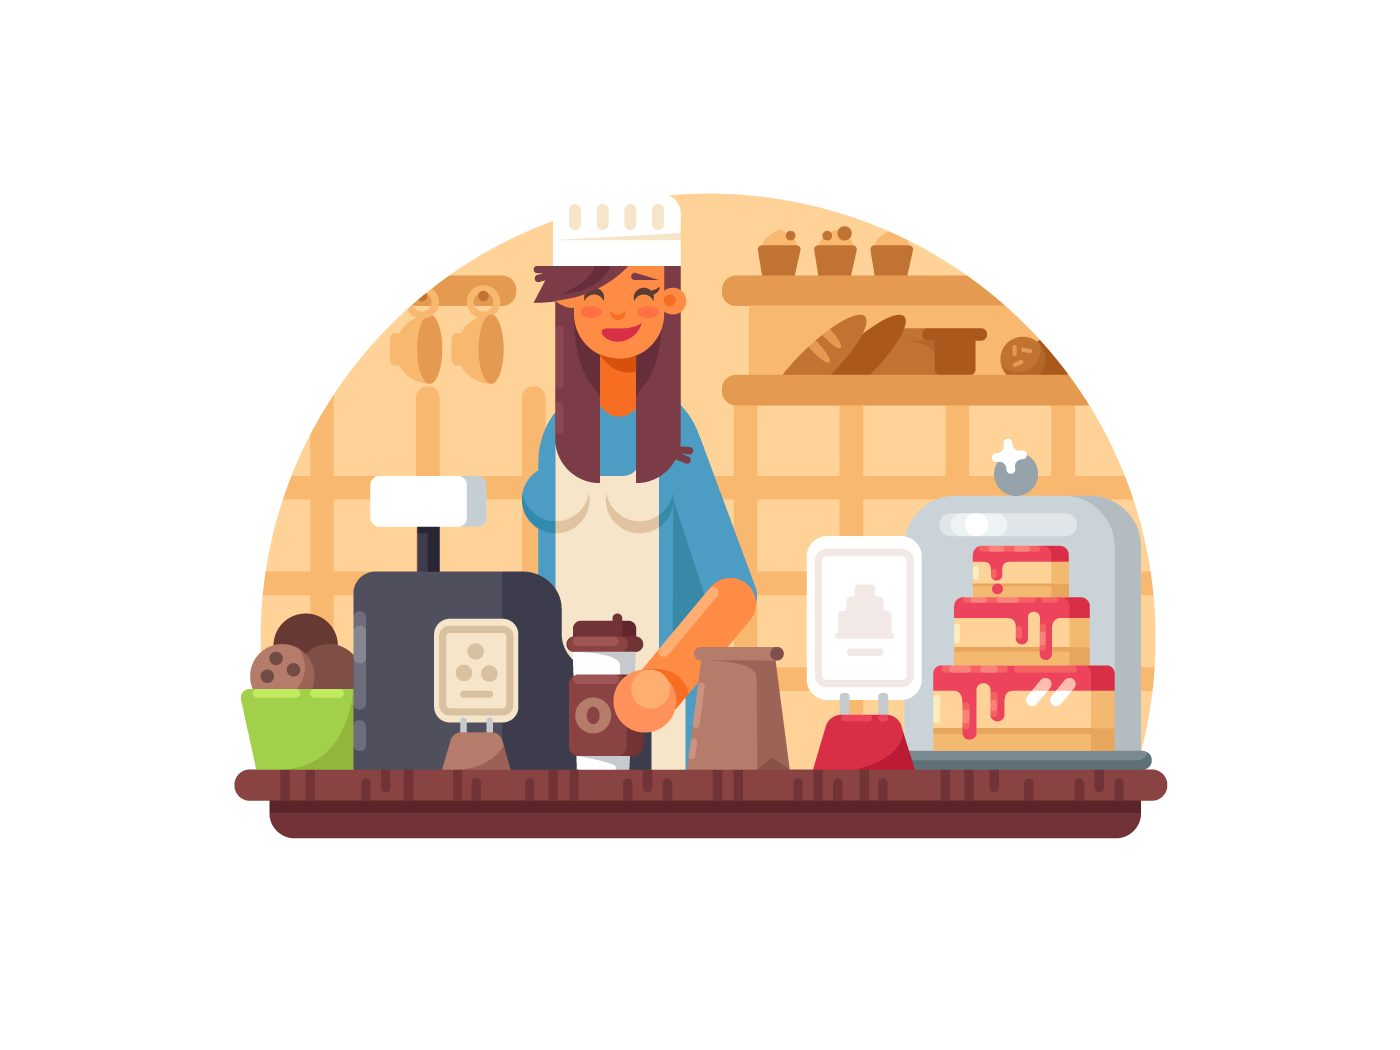 Baker seller woman illustration